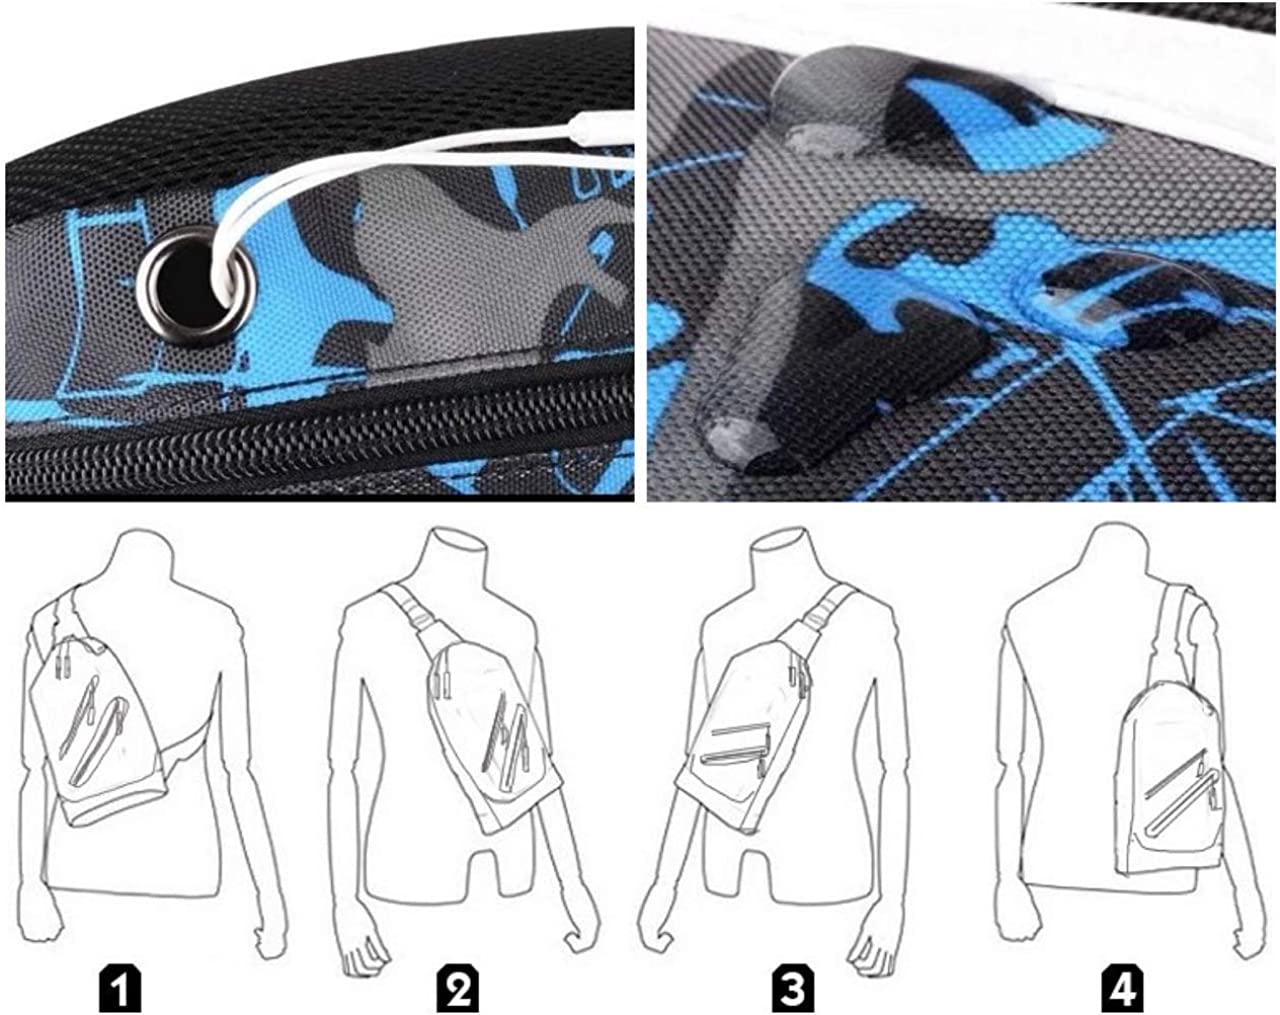 2 bags included white /& blue - Urban sling backpack good for daily bags and couple bags for TWO Square sling backpack Kk bags for teens Multi sling bag